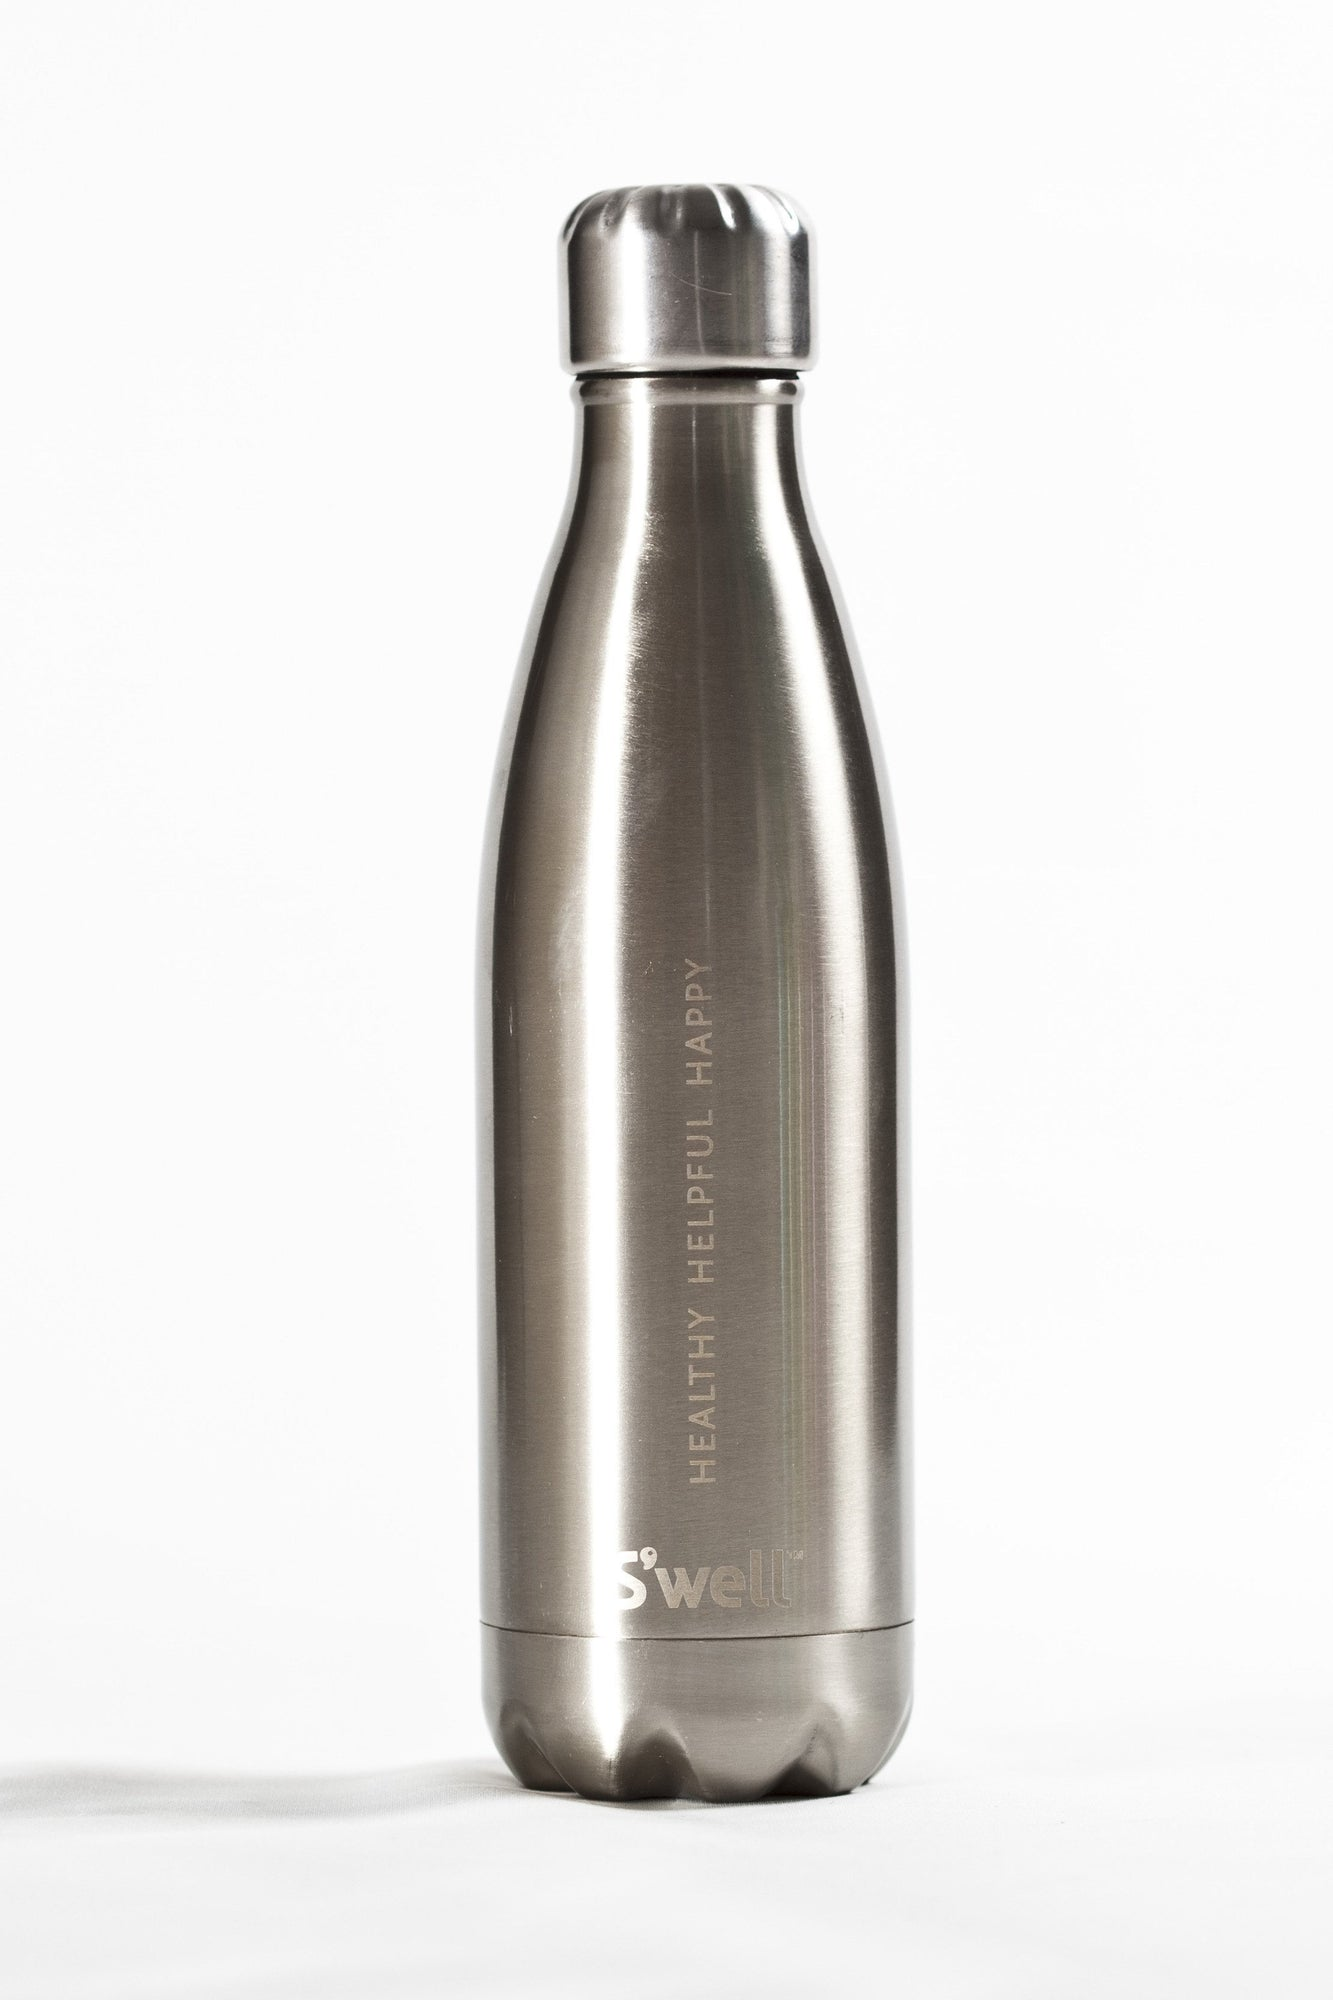 S'well S'well Insulated Stainless Steel Bottle 500ml Silver Lining